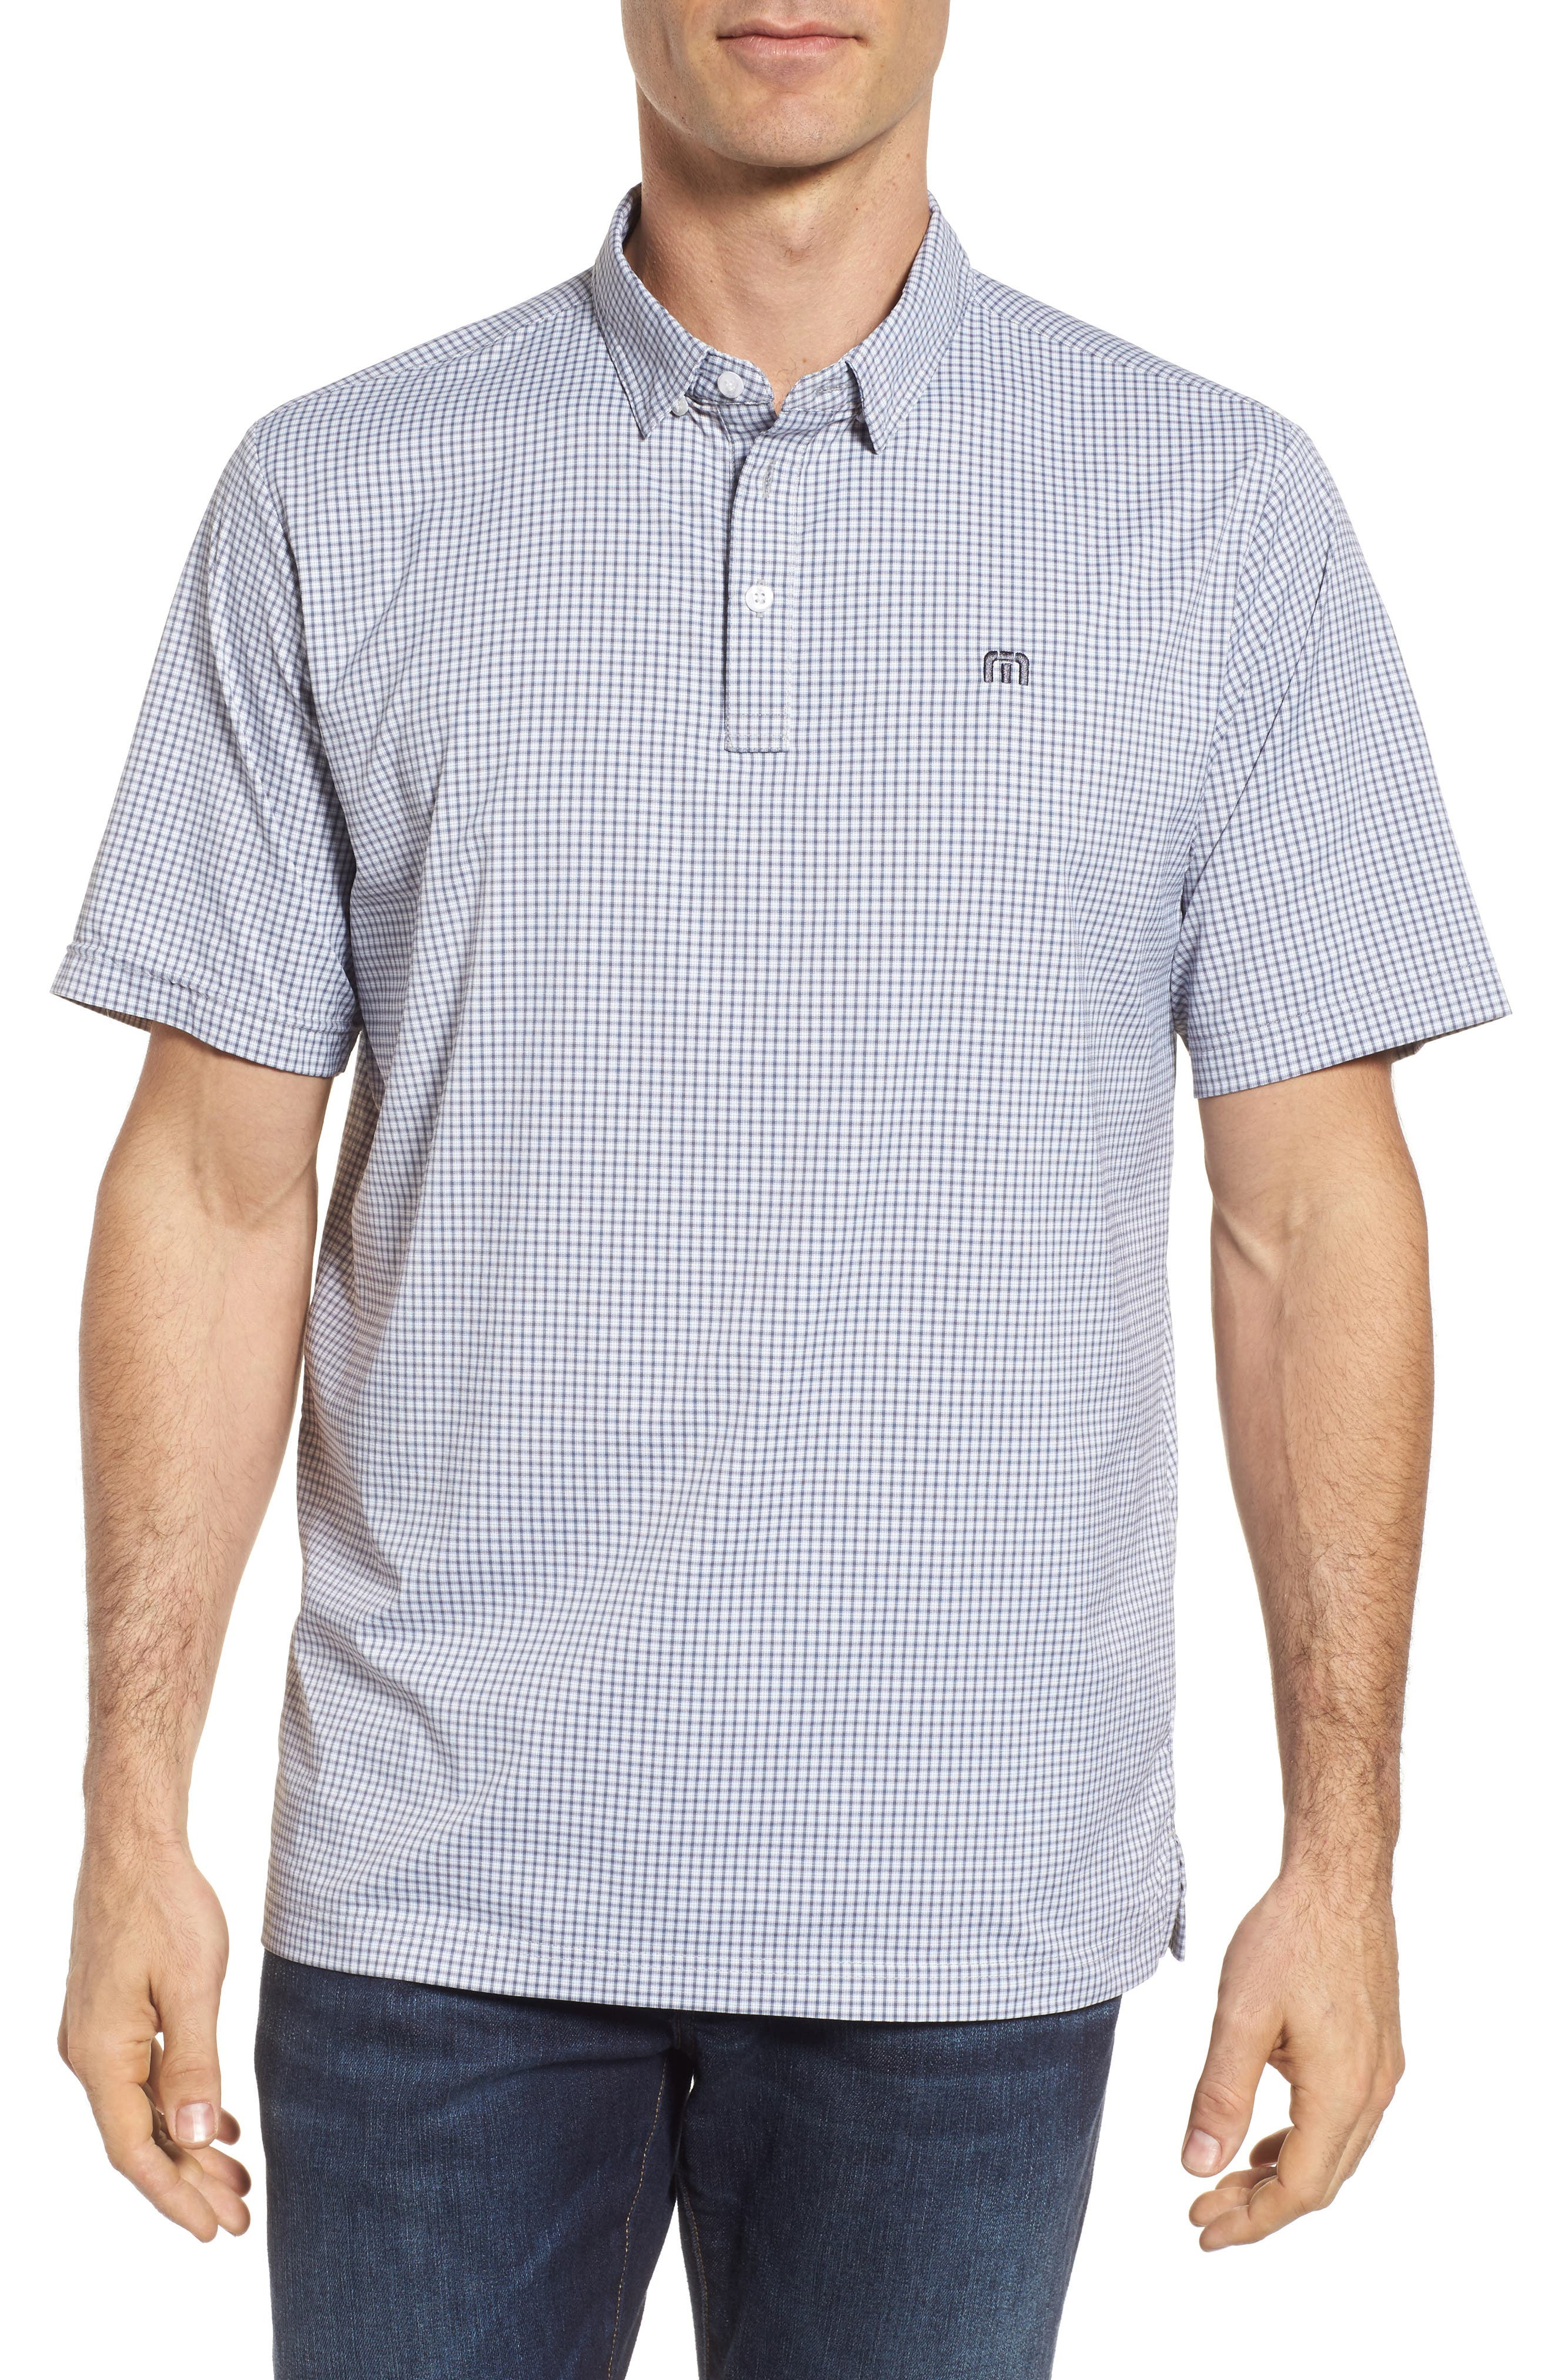 Zim Polo,                             Main thumbnail 1, color,                             White/ Grisaille